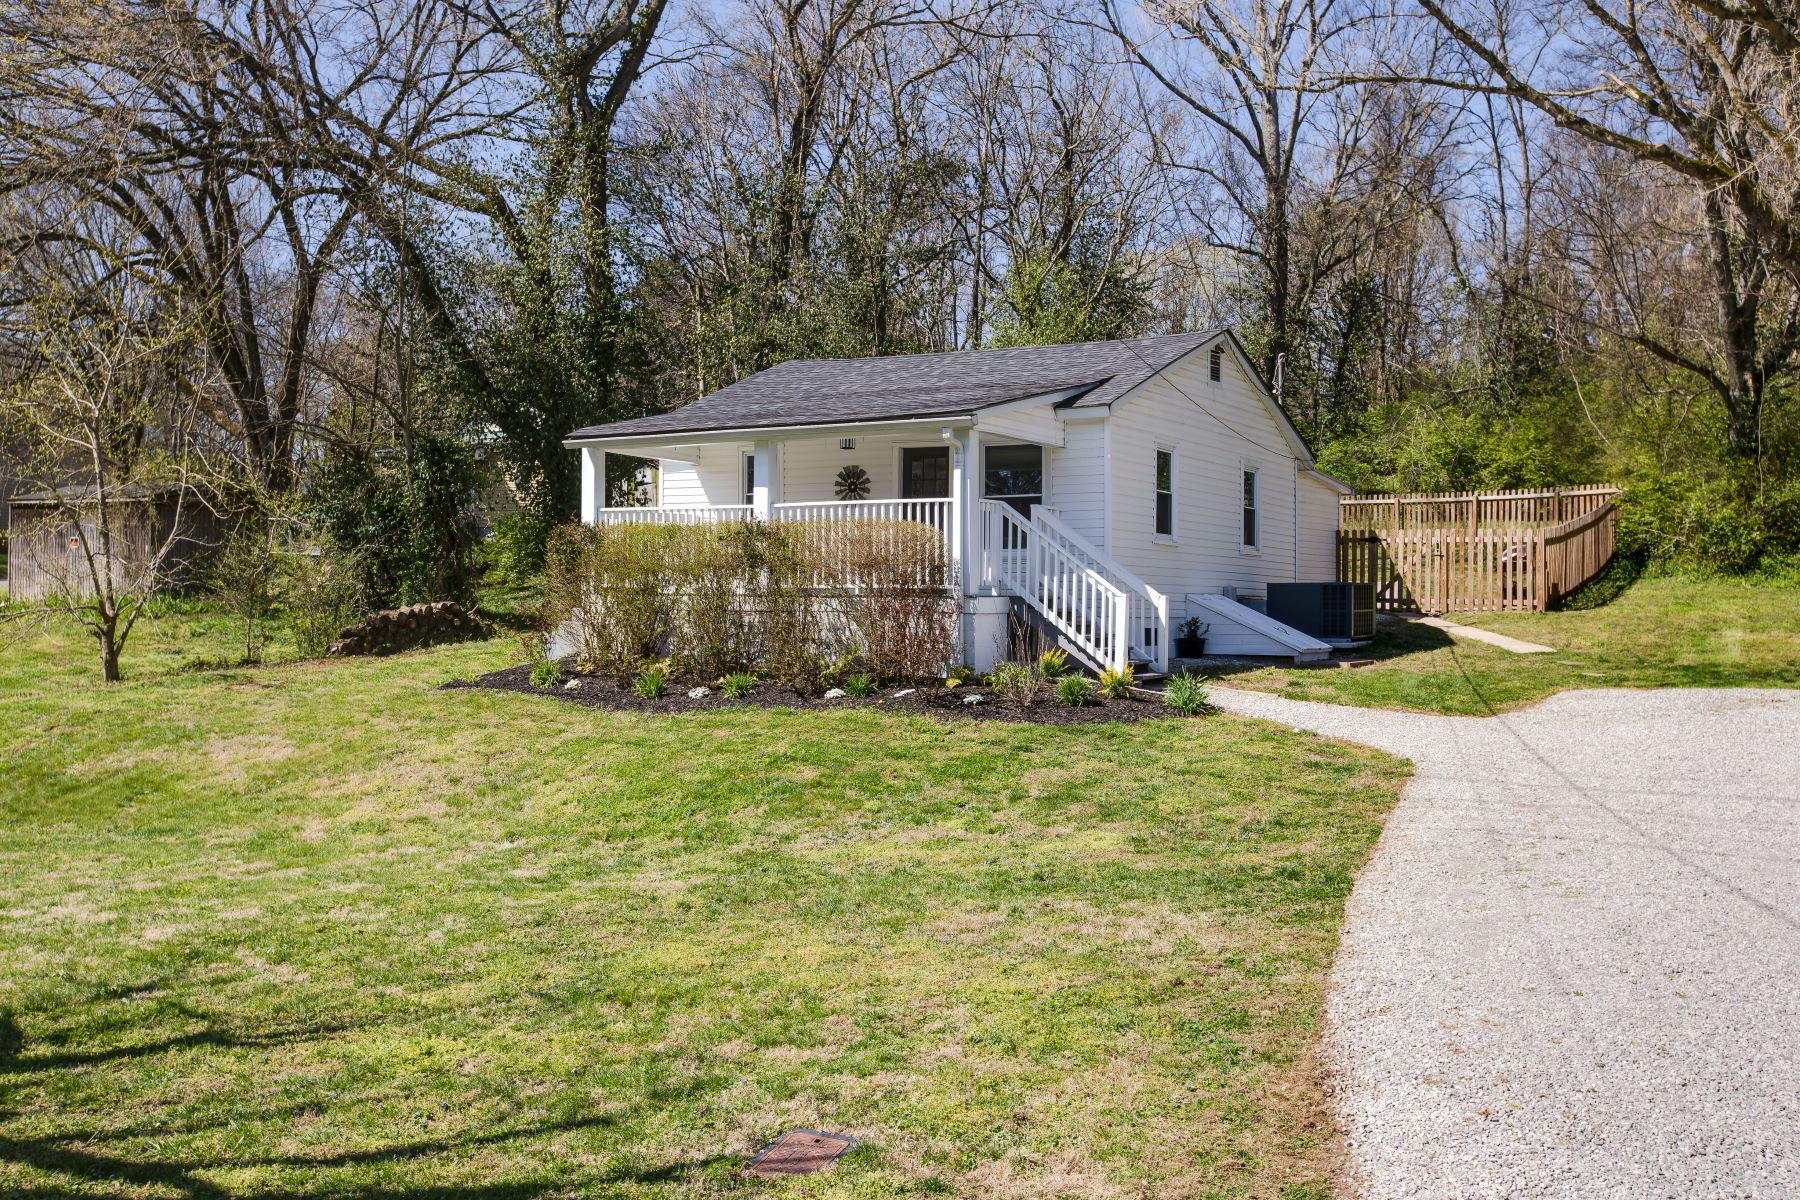 Single Family Home for Sale at Renovated Historic Cottage 129 Thompson Aly Franklin, Tennessee 37064 United States